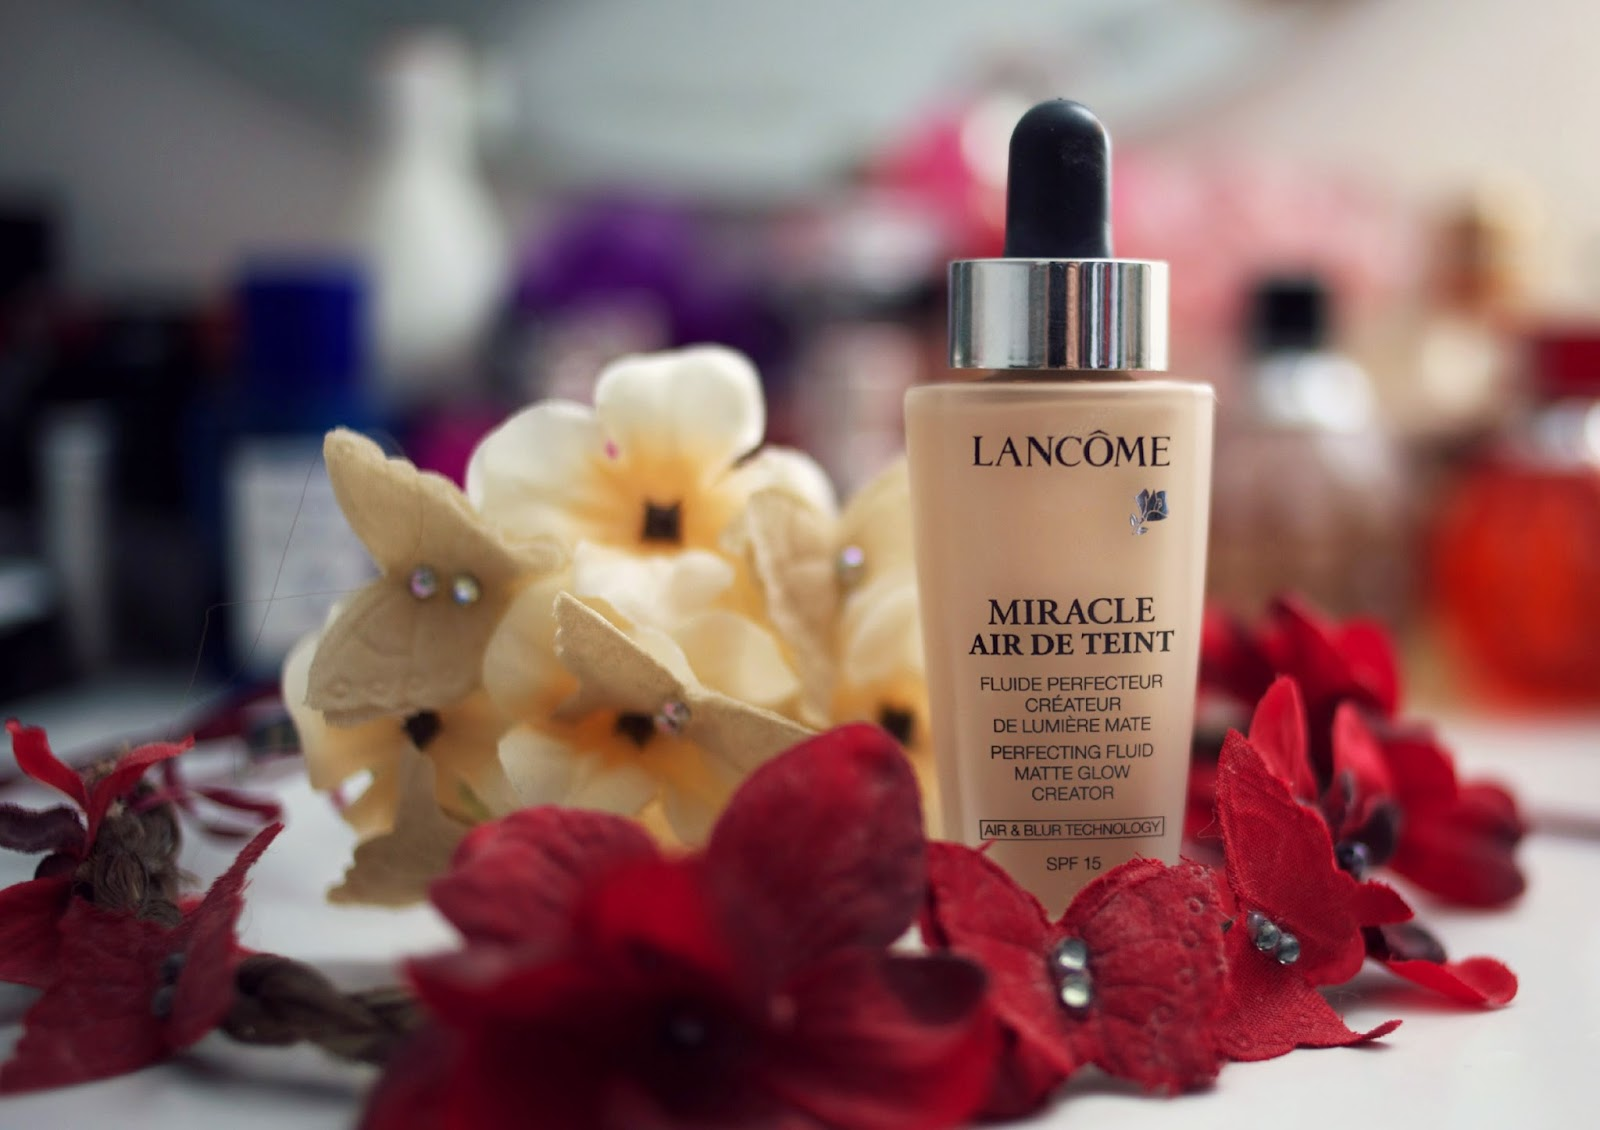 lancome-miracle-air-de-teint